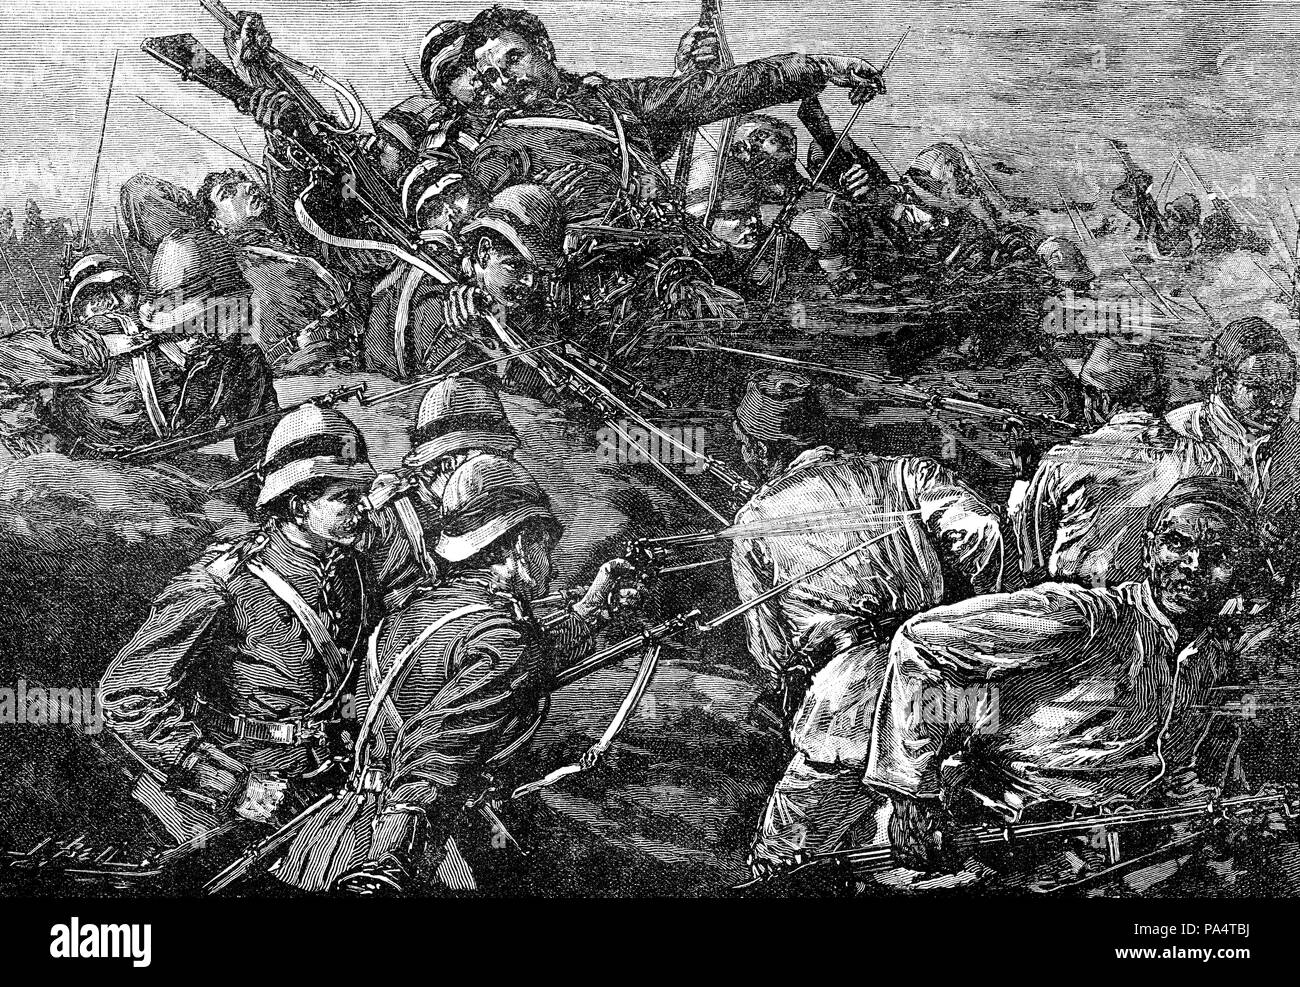 Highland Brigade assaulting the Egyptian entrenchments at the Battle of Tel-el-Kebir on 13th September 1882, Egyptian War, From British Battles on Lan - Stock Image